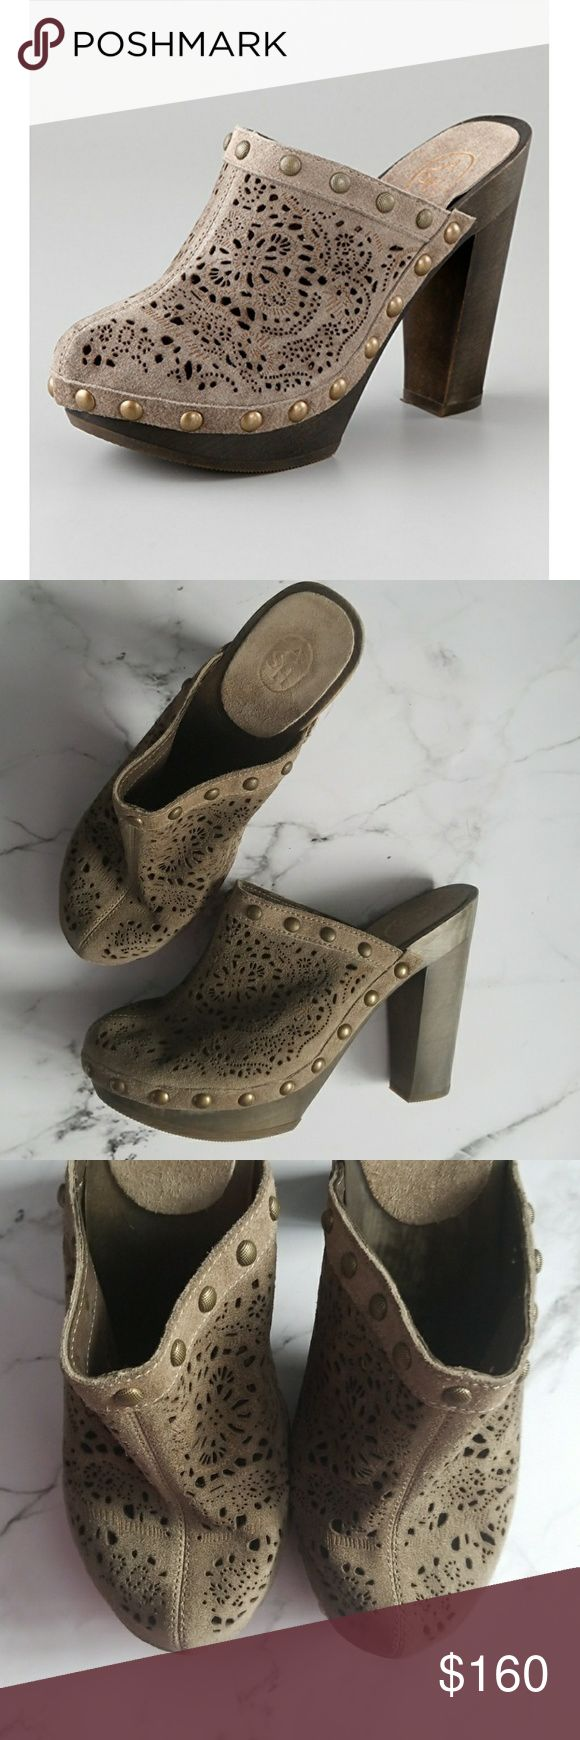 """Ash Spicy Cutout High Heel Clogs These distressed suede platform clogs feature a laser cutout pattern and studded edges. Wooden platform and wooden heel. Rubber sole. Taupe in color.  New without box.  Size could not be found but fits about a size 7.5/8. Heel height measures 4.5"""" with a platform of 1"""" Ash Shoes Mules & Clogs"""